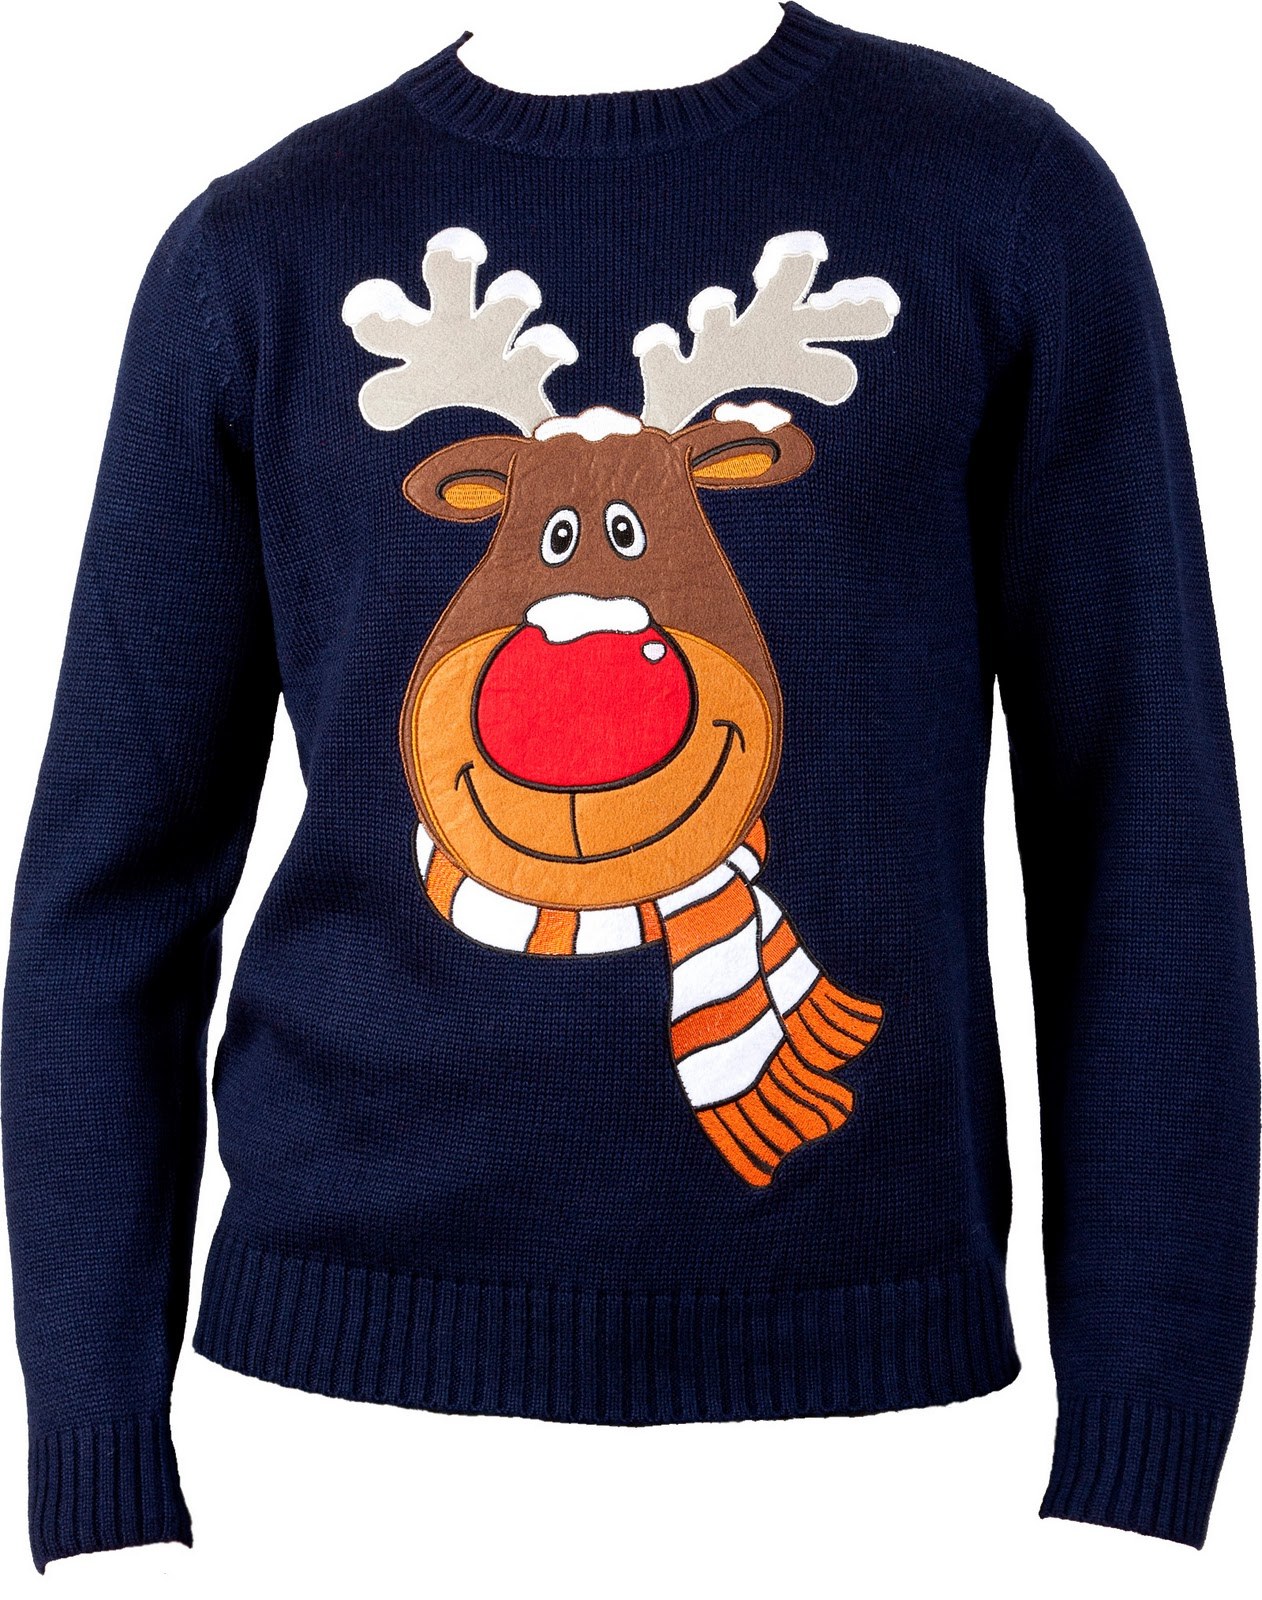 Christmas Jumpers Our collection of Christmas jumpers is sure to get you in the festive spirit. Browse styles for her, him and the kids that can be worn on Christmas .